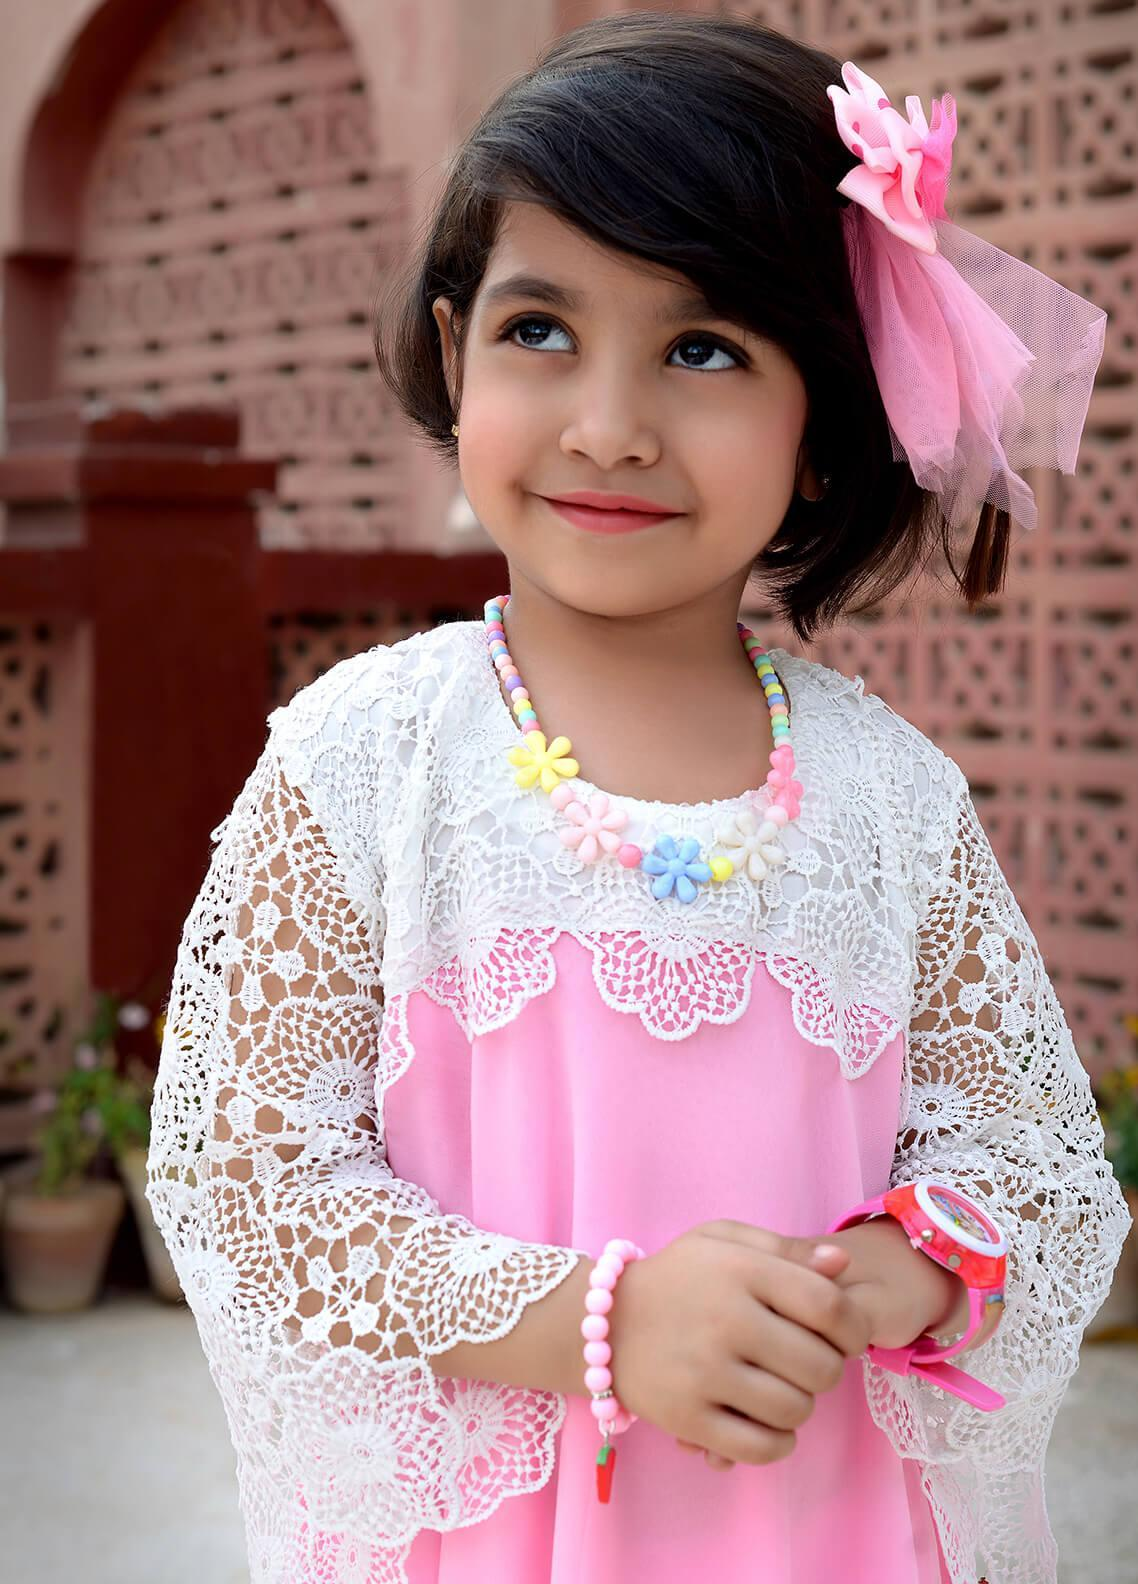 Nargis Shaheen Cotton Net Formal Girls Frocks -  NKS-003 Pink